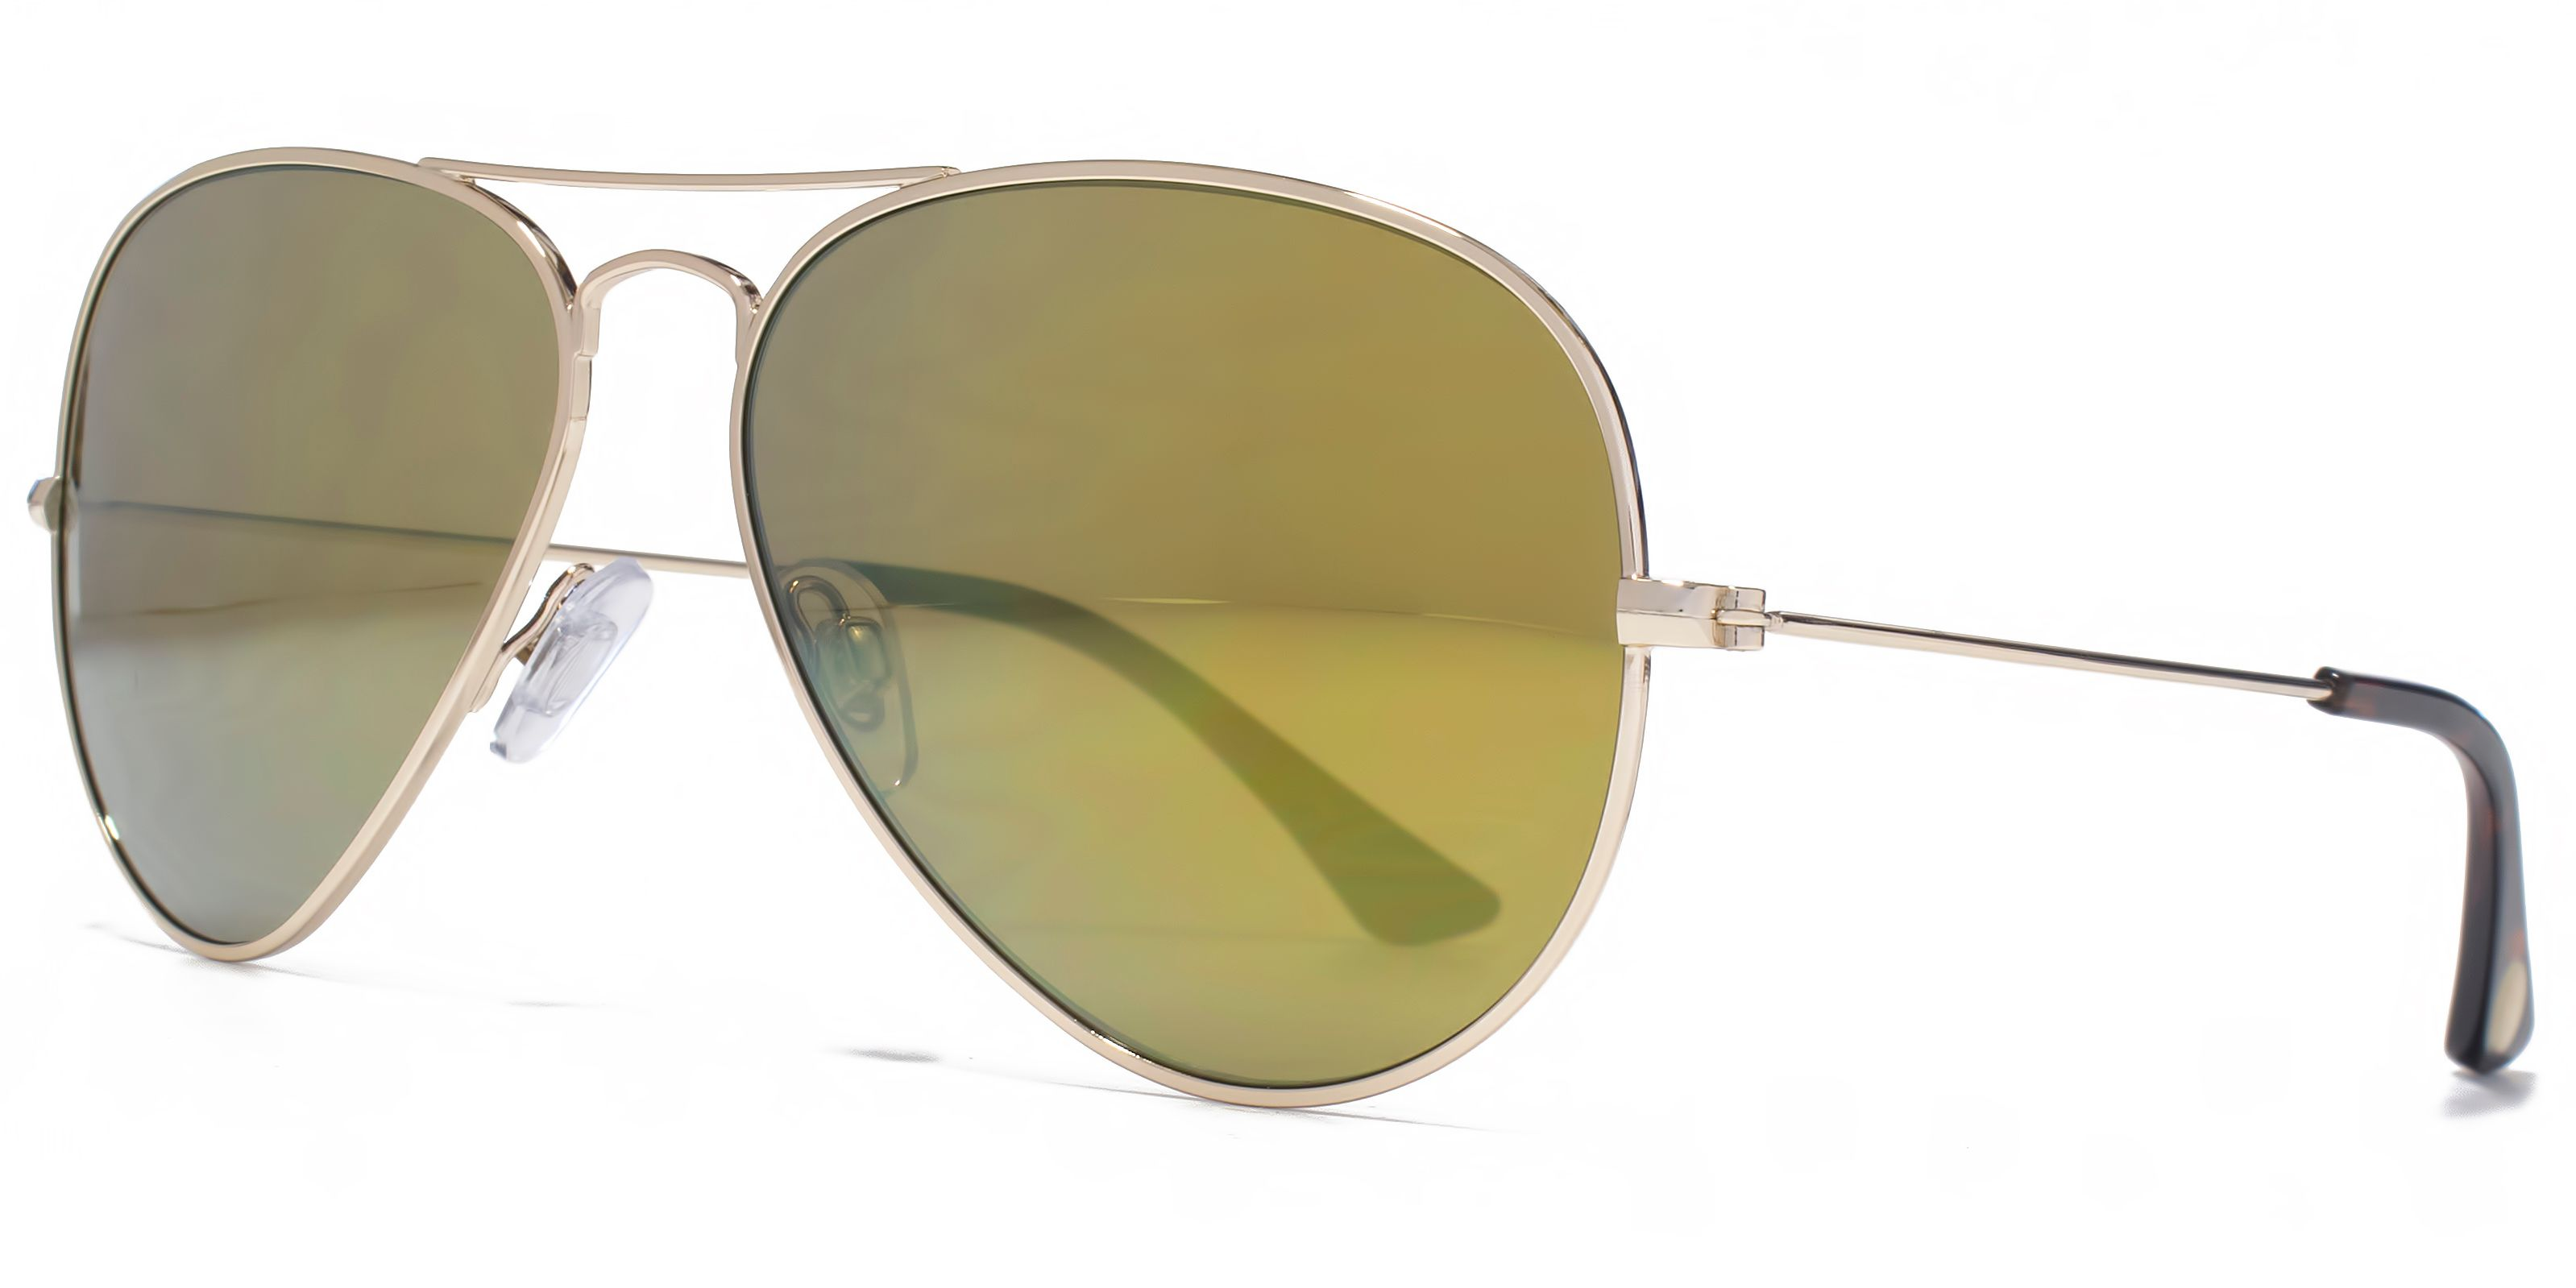 American Freshman American Freshman 26AFS023 Light Gold Aviator Sunglasses